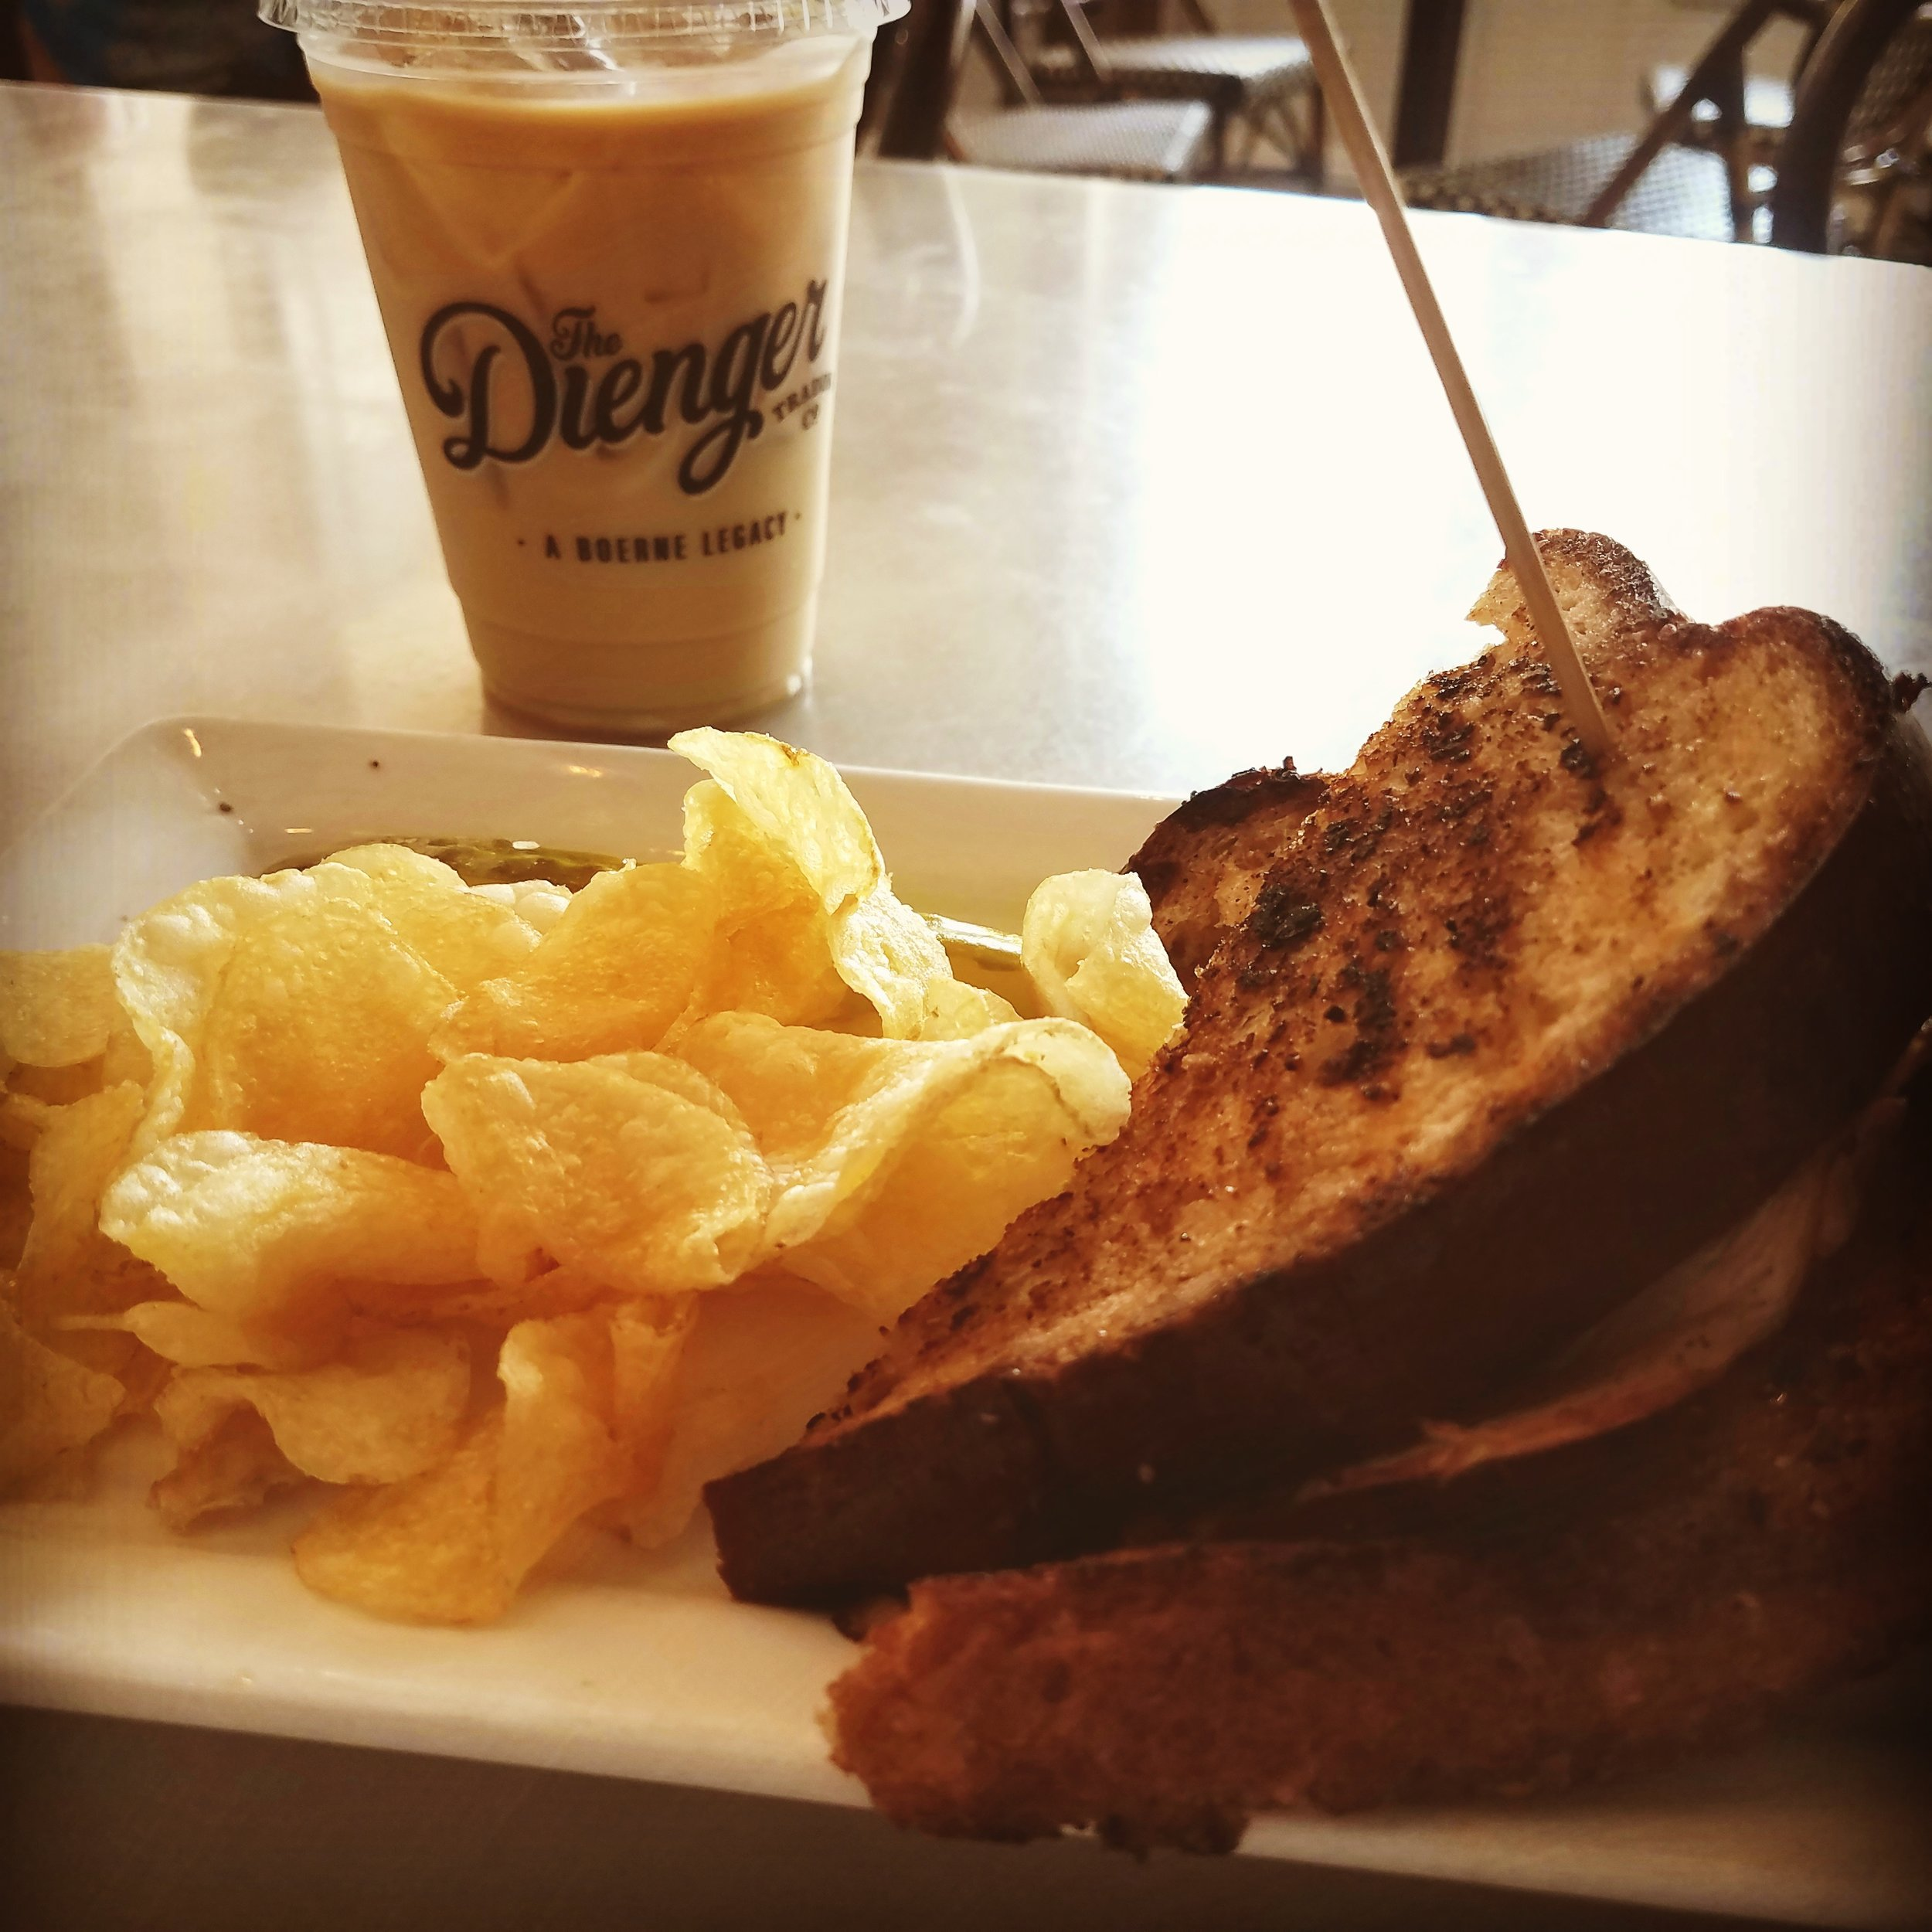 Turkey melt with kettle chips and an iced coffee